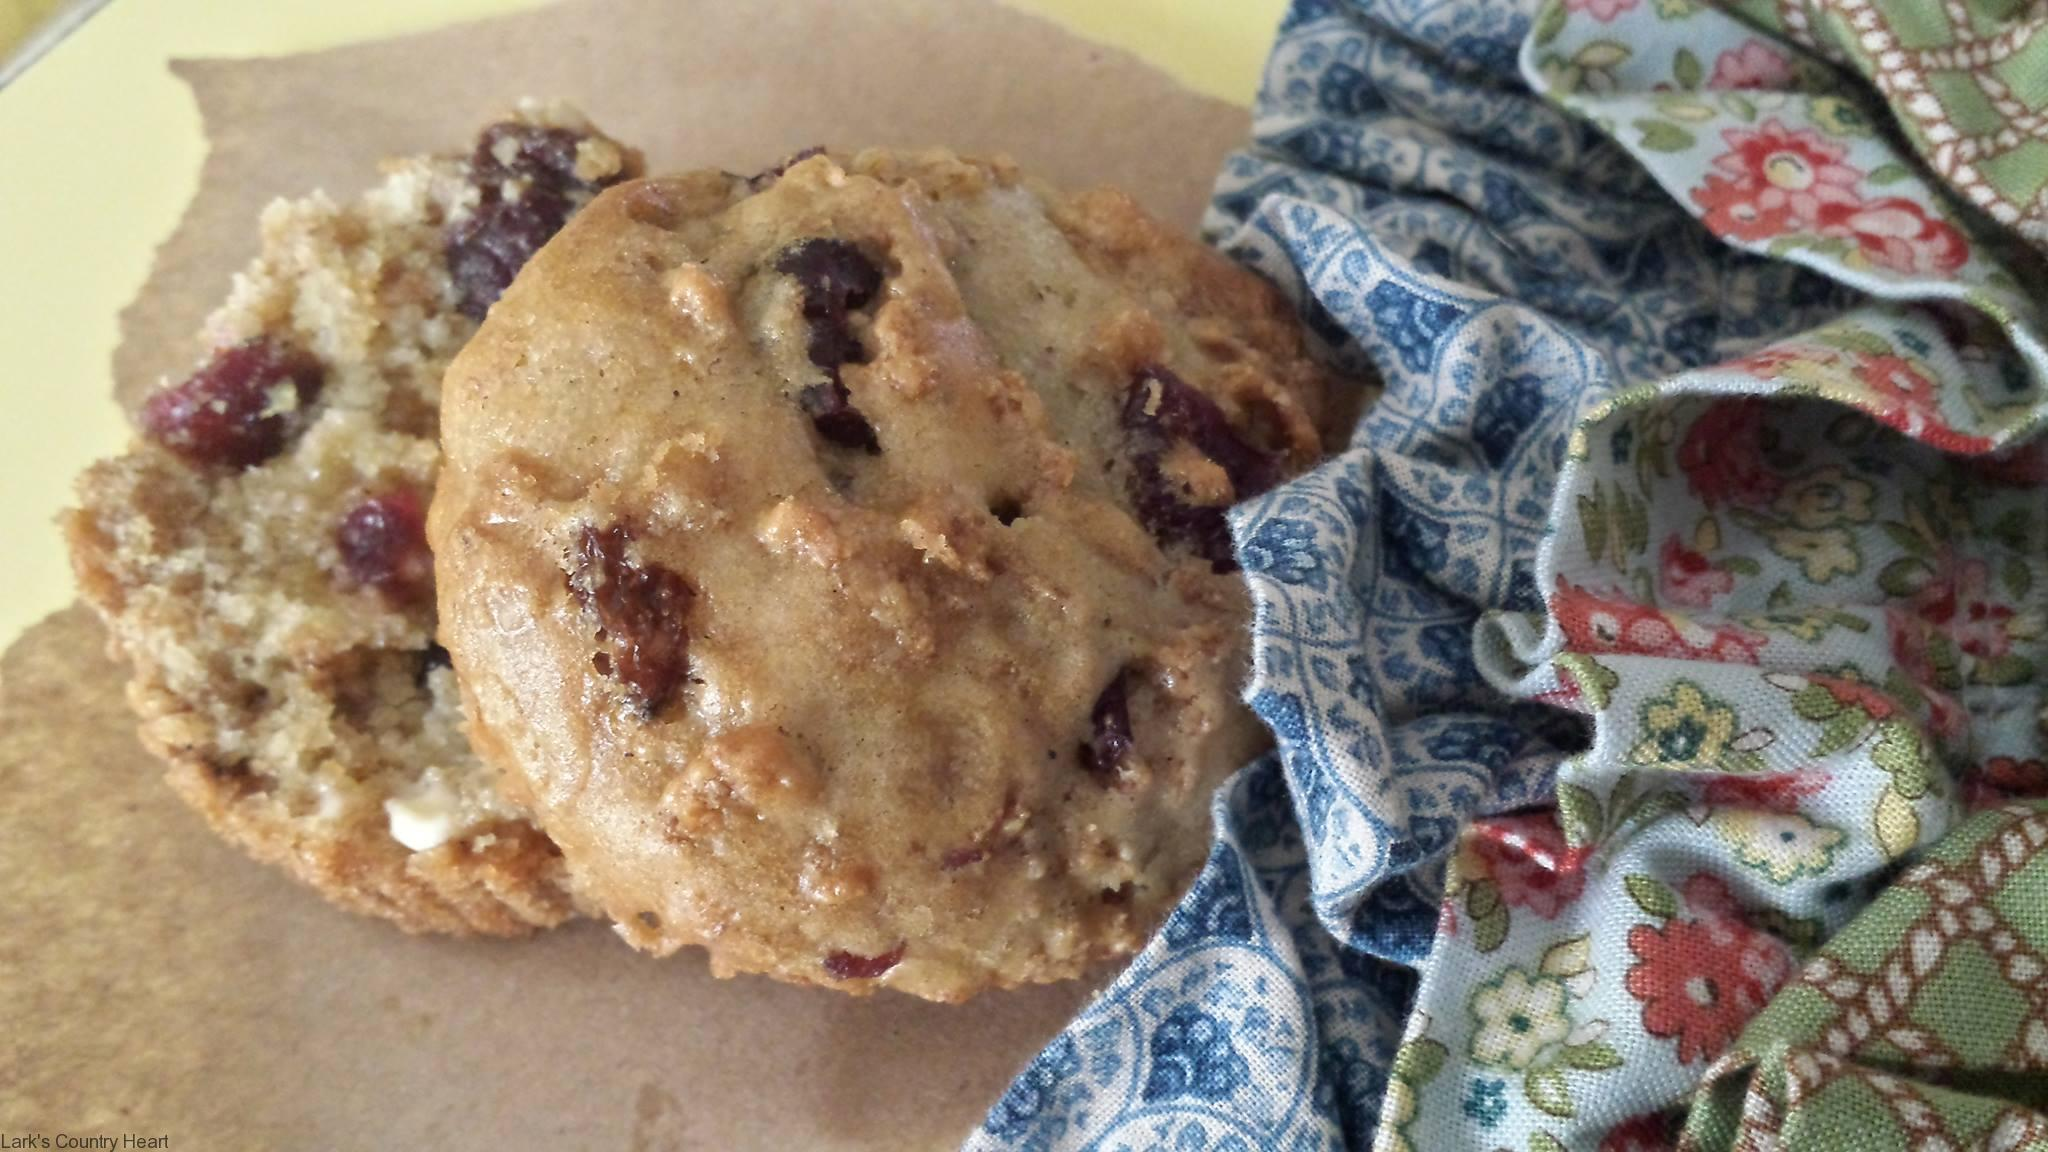 Cran-Raisin Bran Morning Muffins